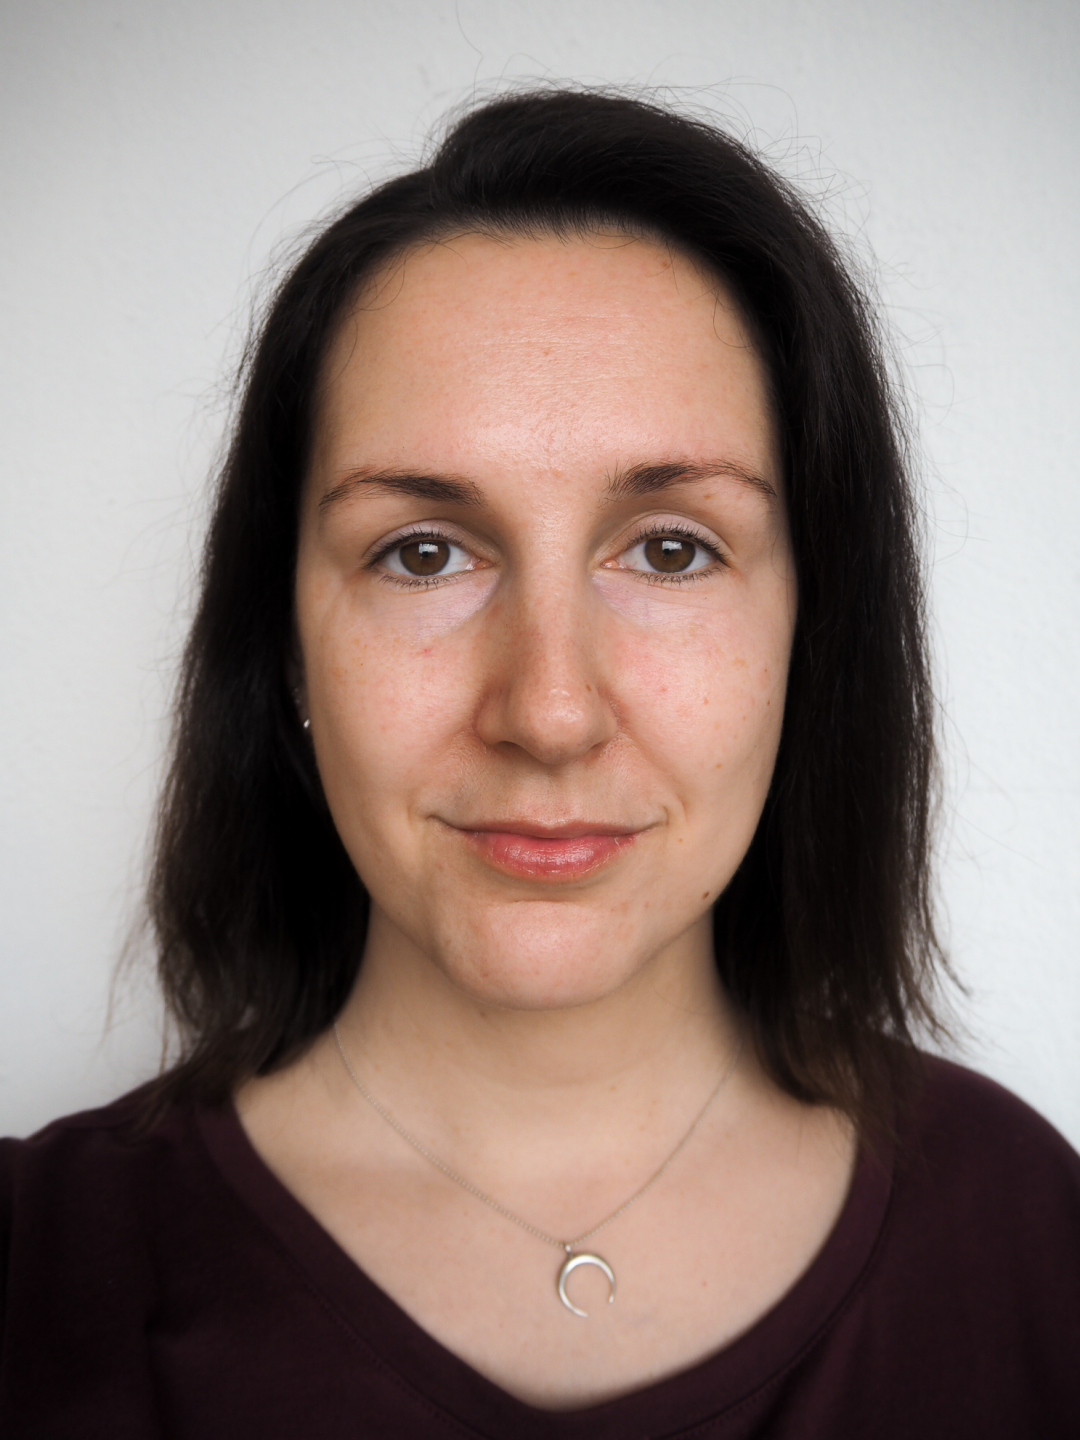 echtkathrin no makeup vs no makeup look